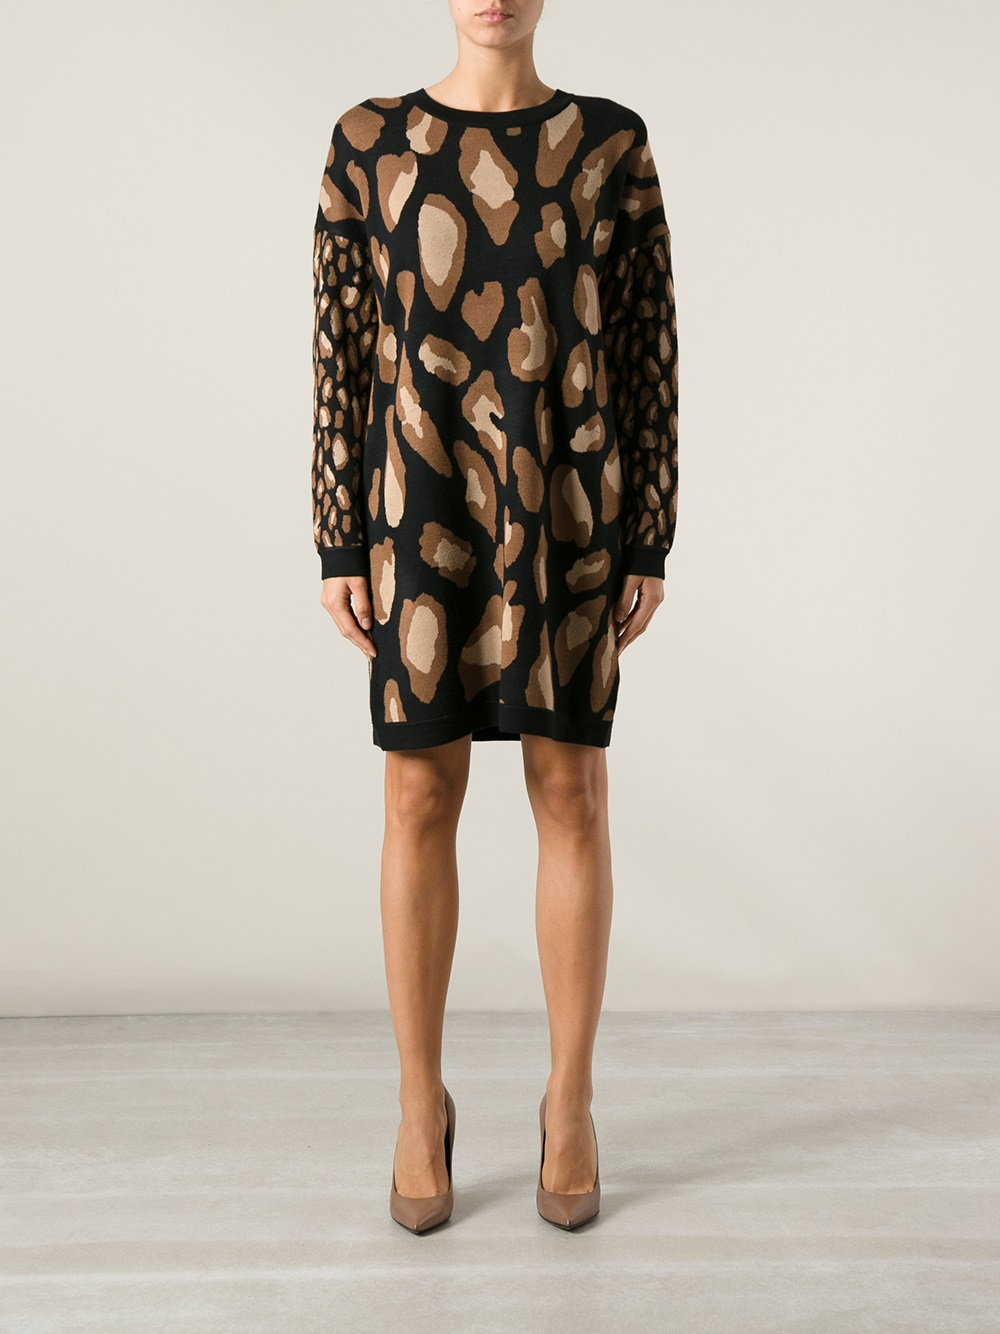 Lyst Dkny Leopard Print Dress In Black